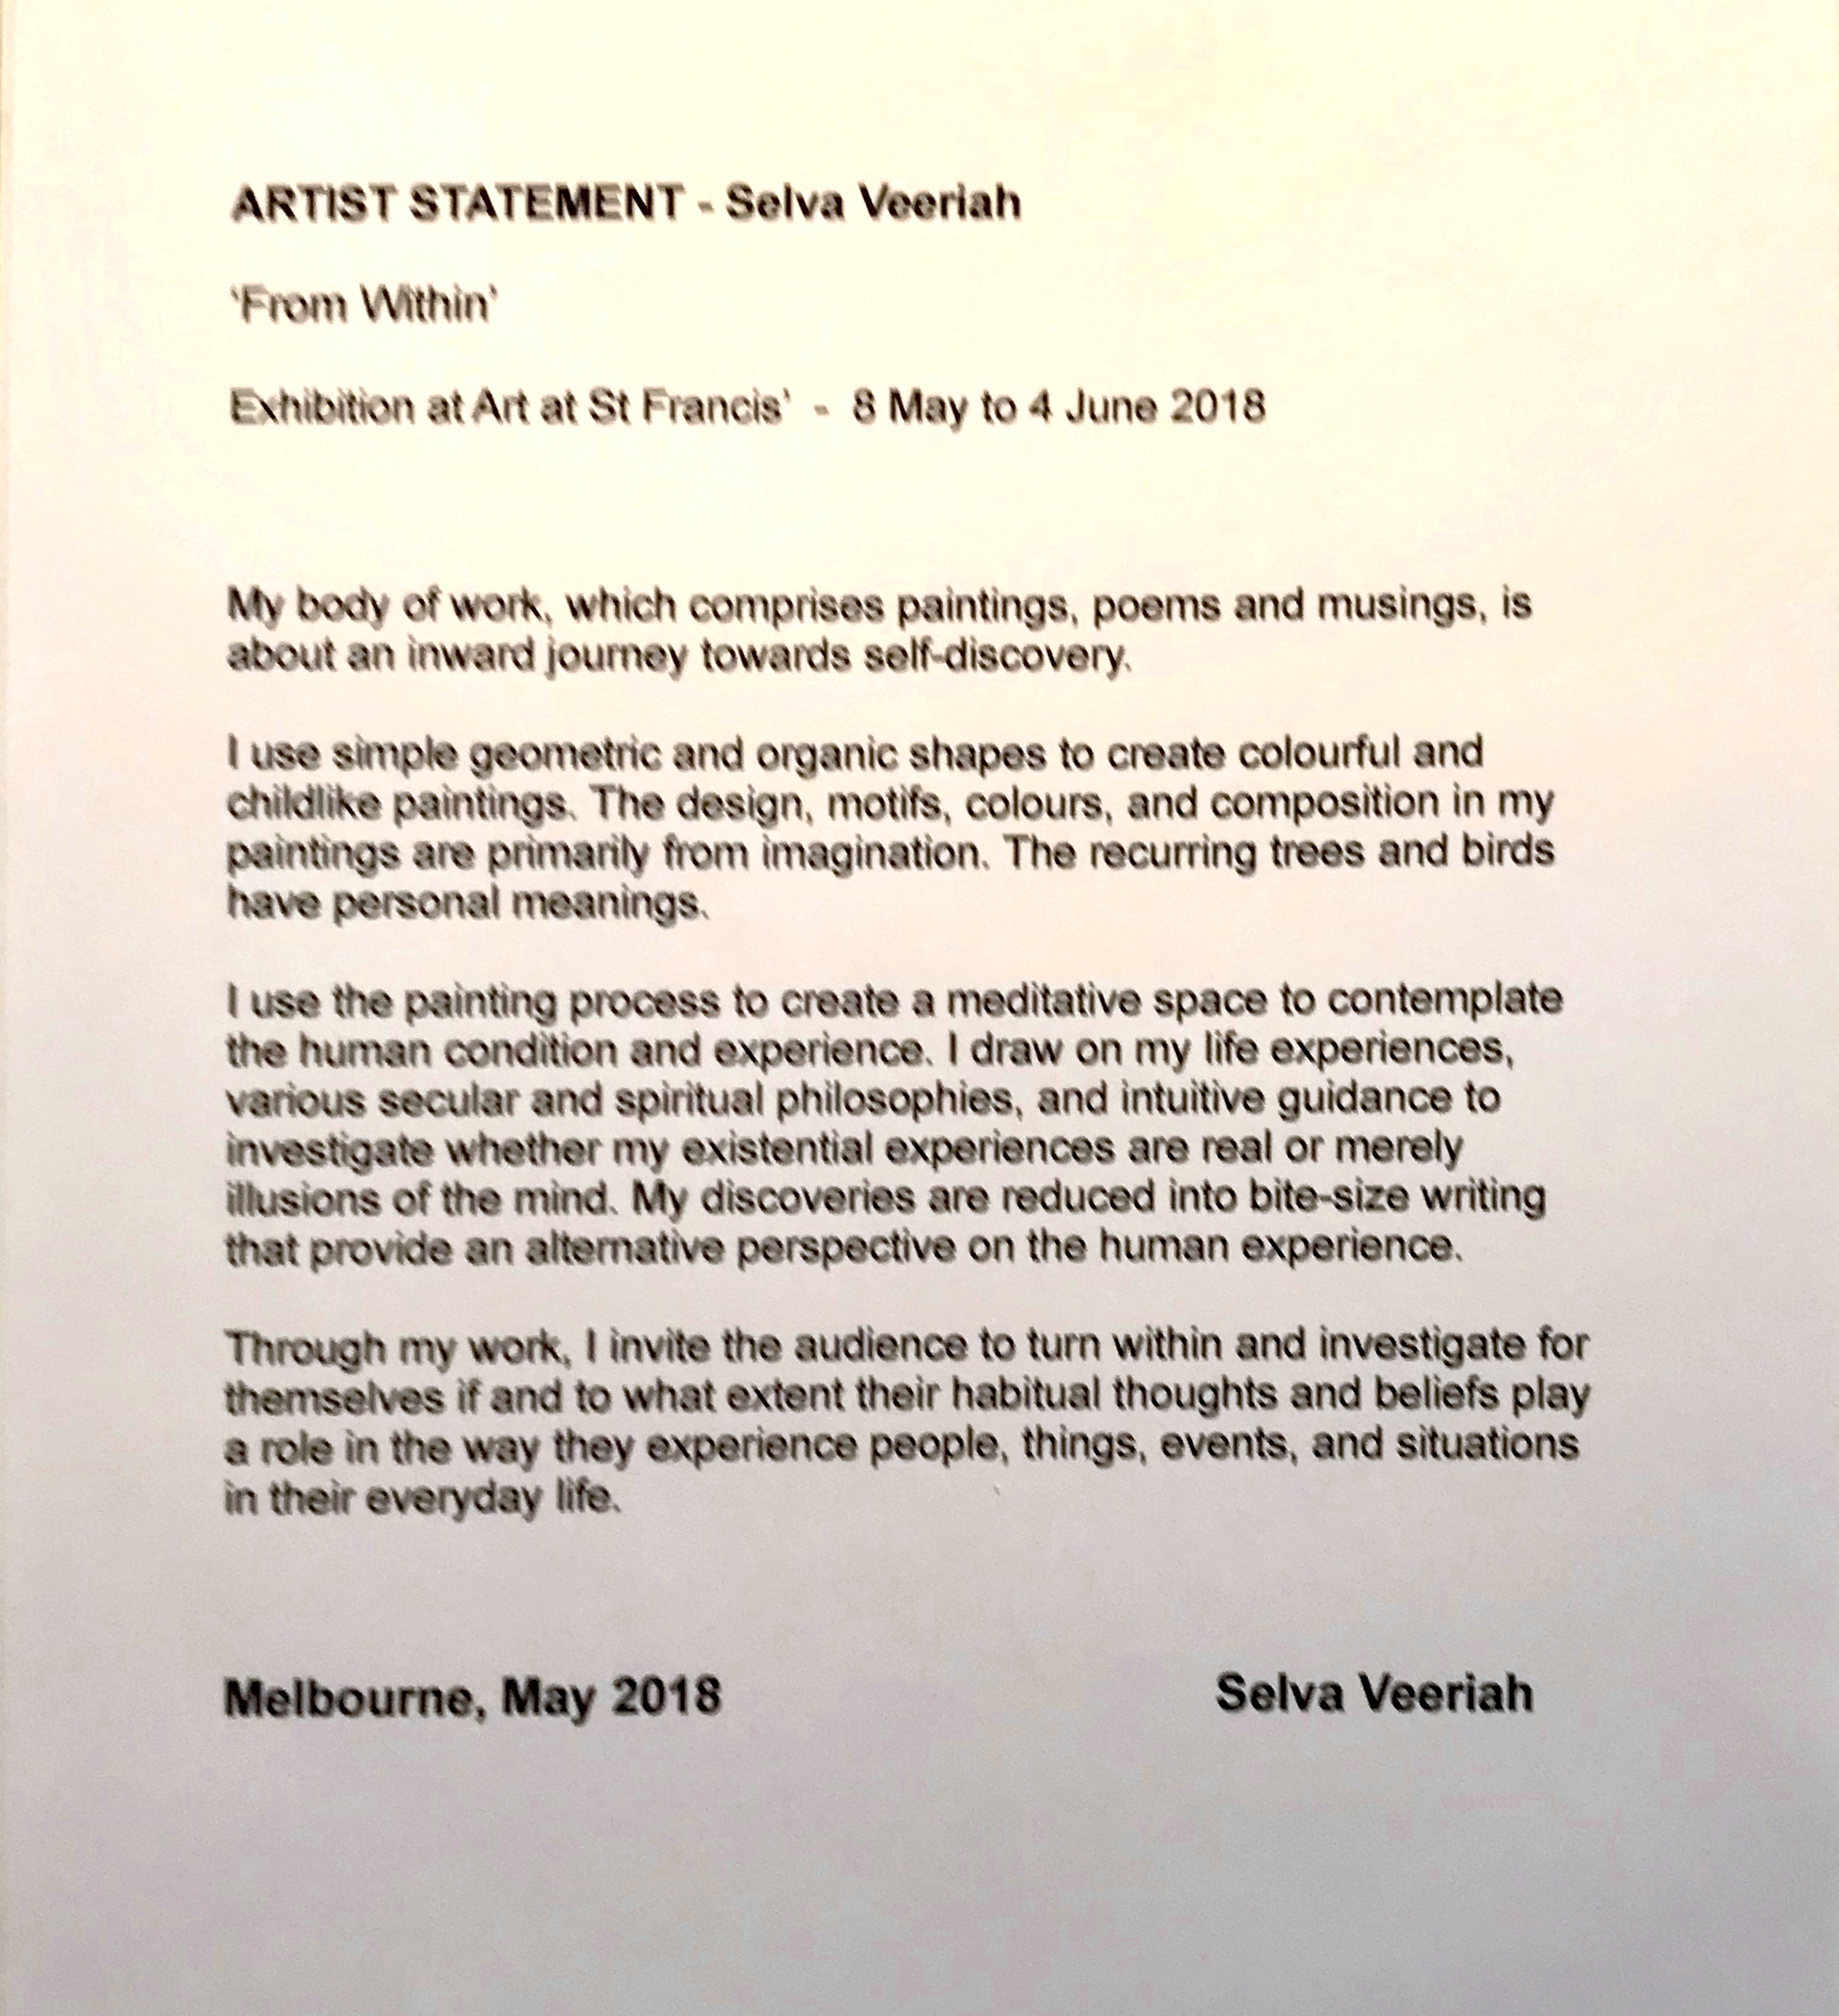 Artist statement for the exhibition 'From Within' at Art @ St Francis, Melbourne.